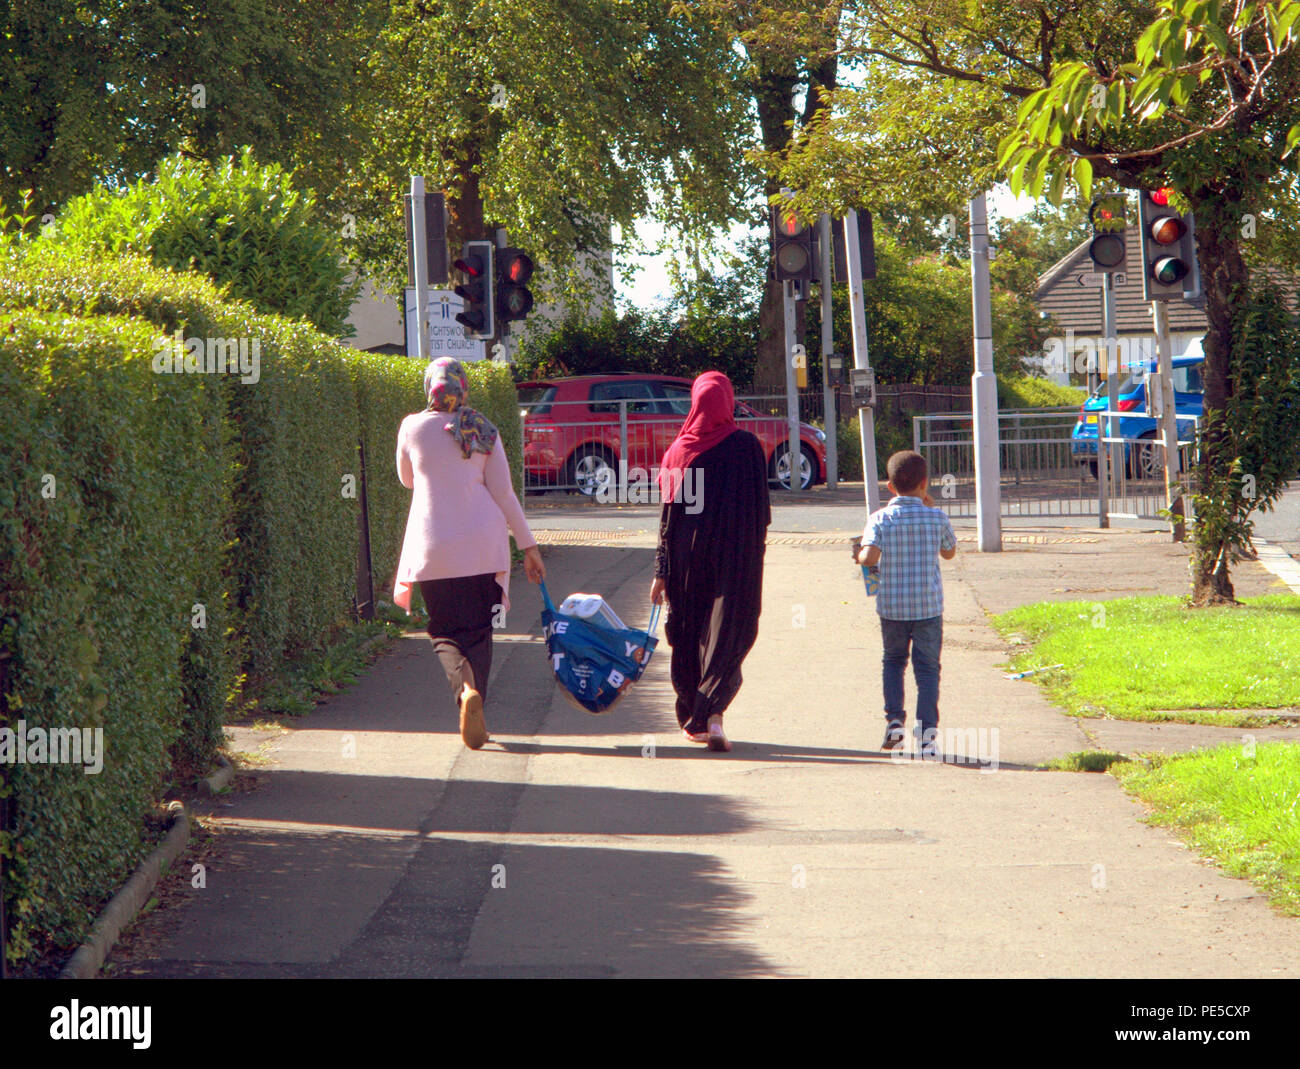 Muslims moslems family shopping bag hijab head gear walking on street family with child viewed from behind Glasgow, UK - Stock Image